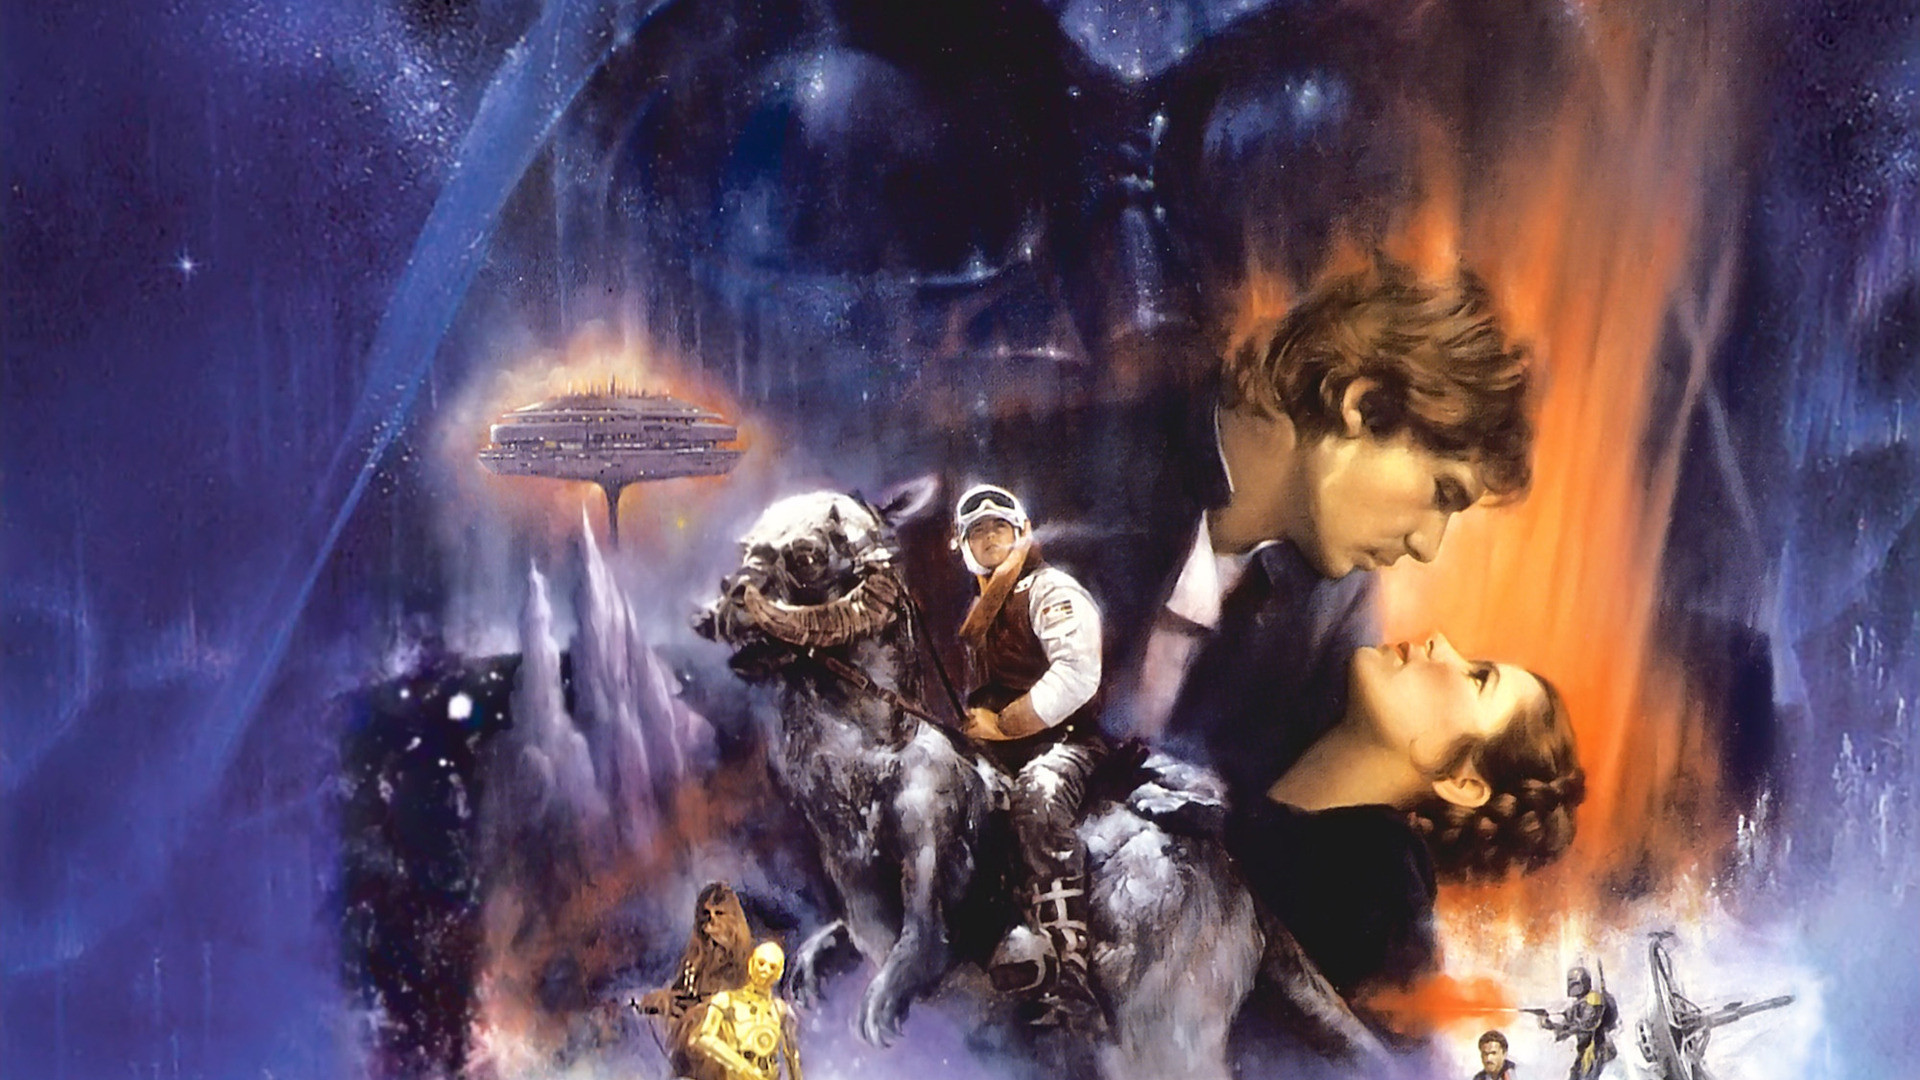 Star Wars New Hope Wallpaper Posted By Zoey Walker